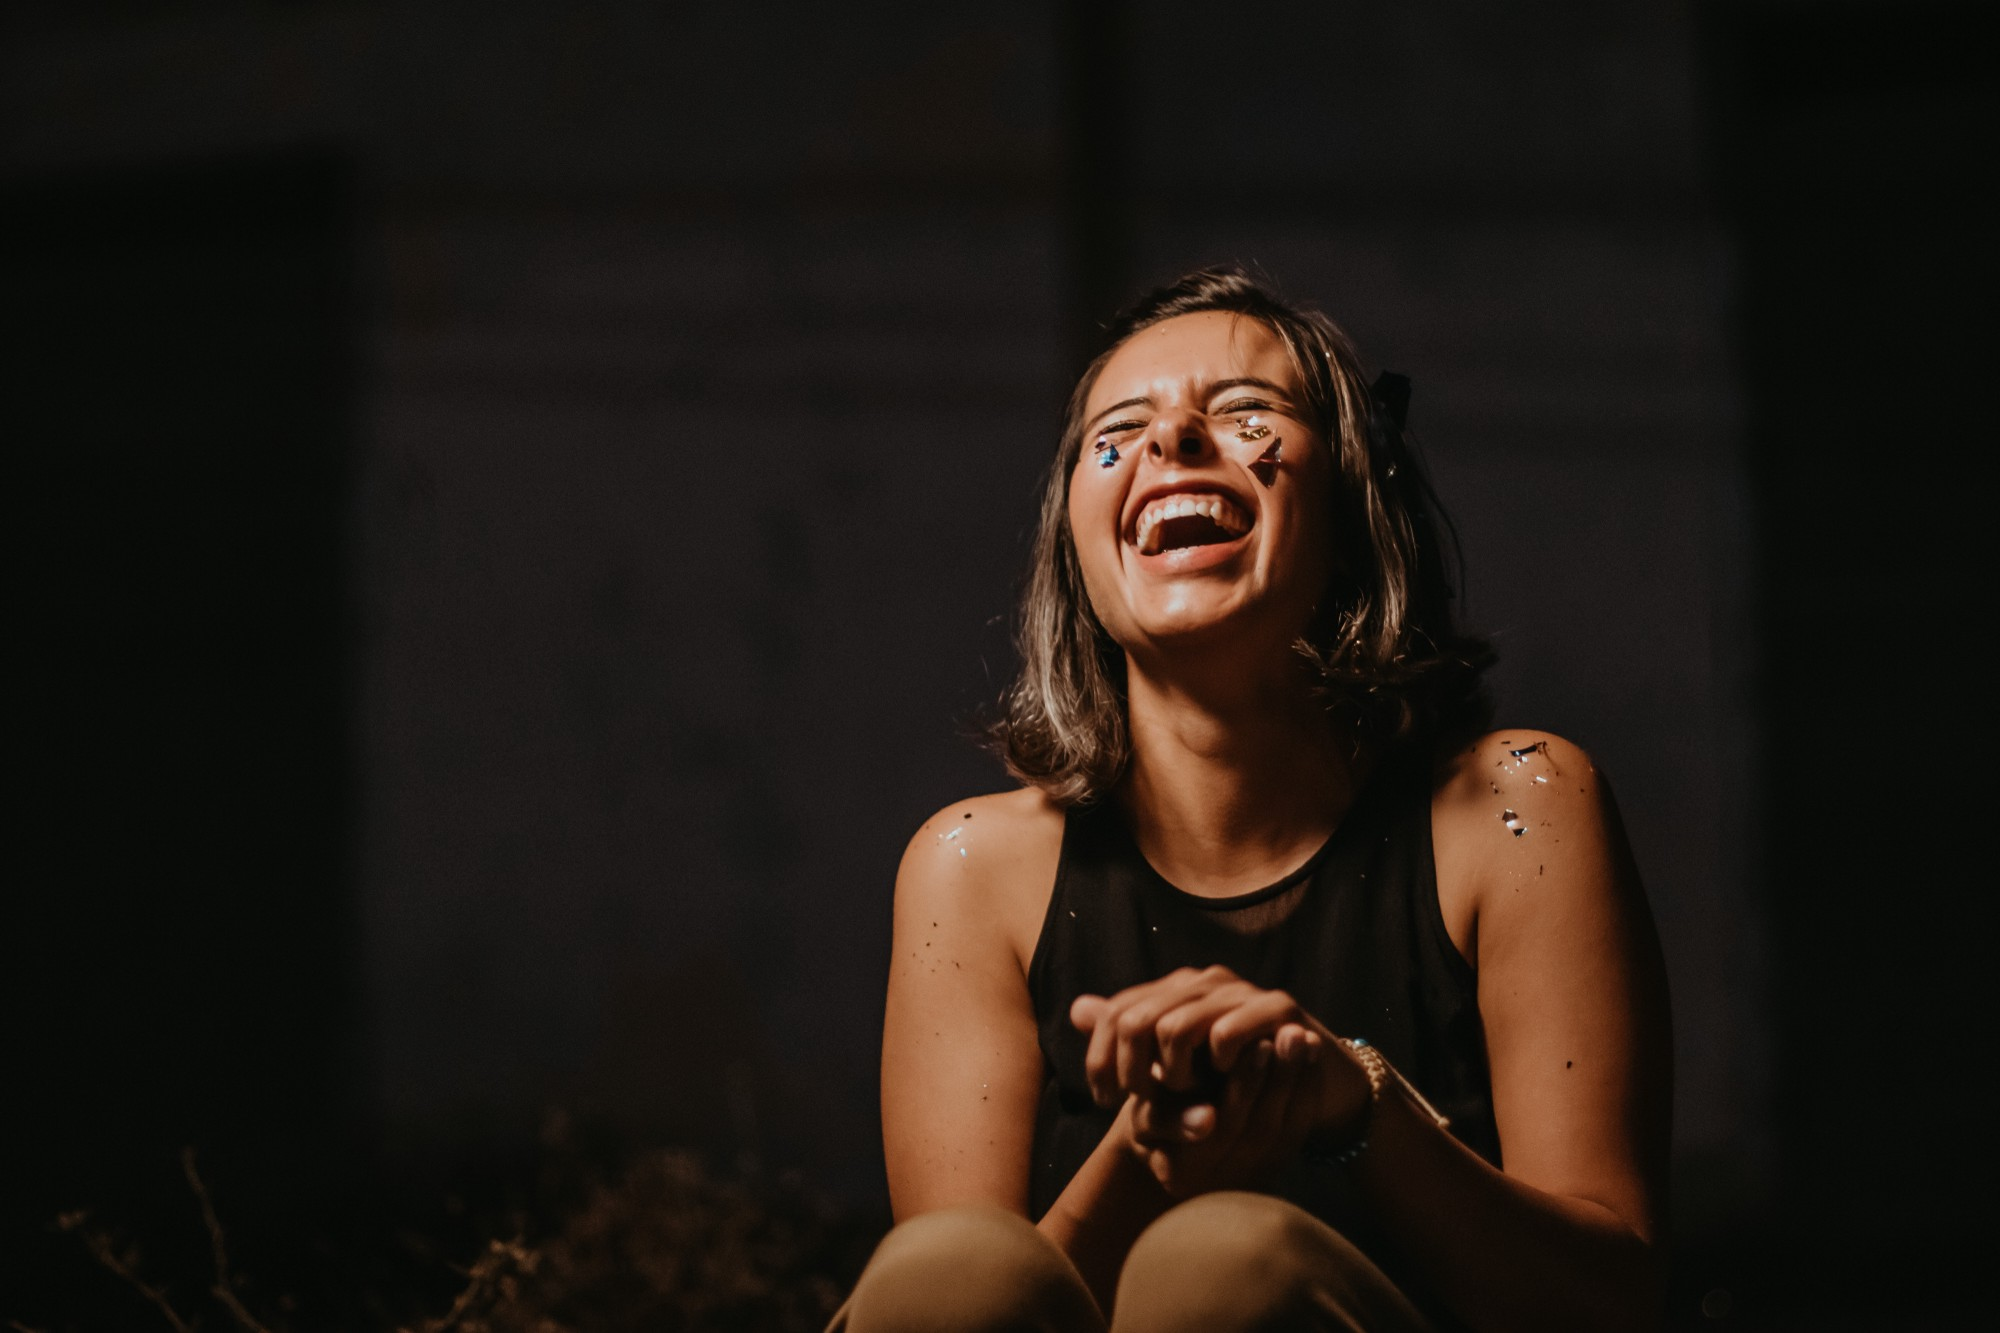 A girl laughing her hearts out.